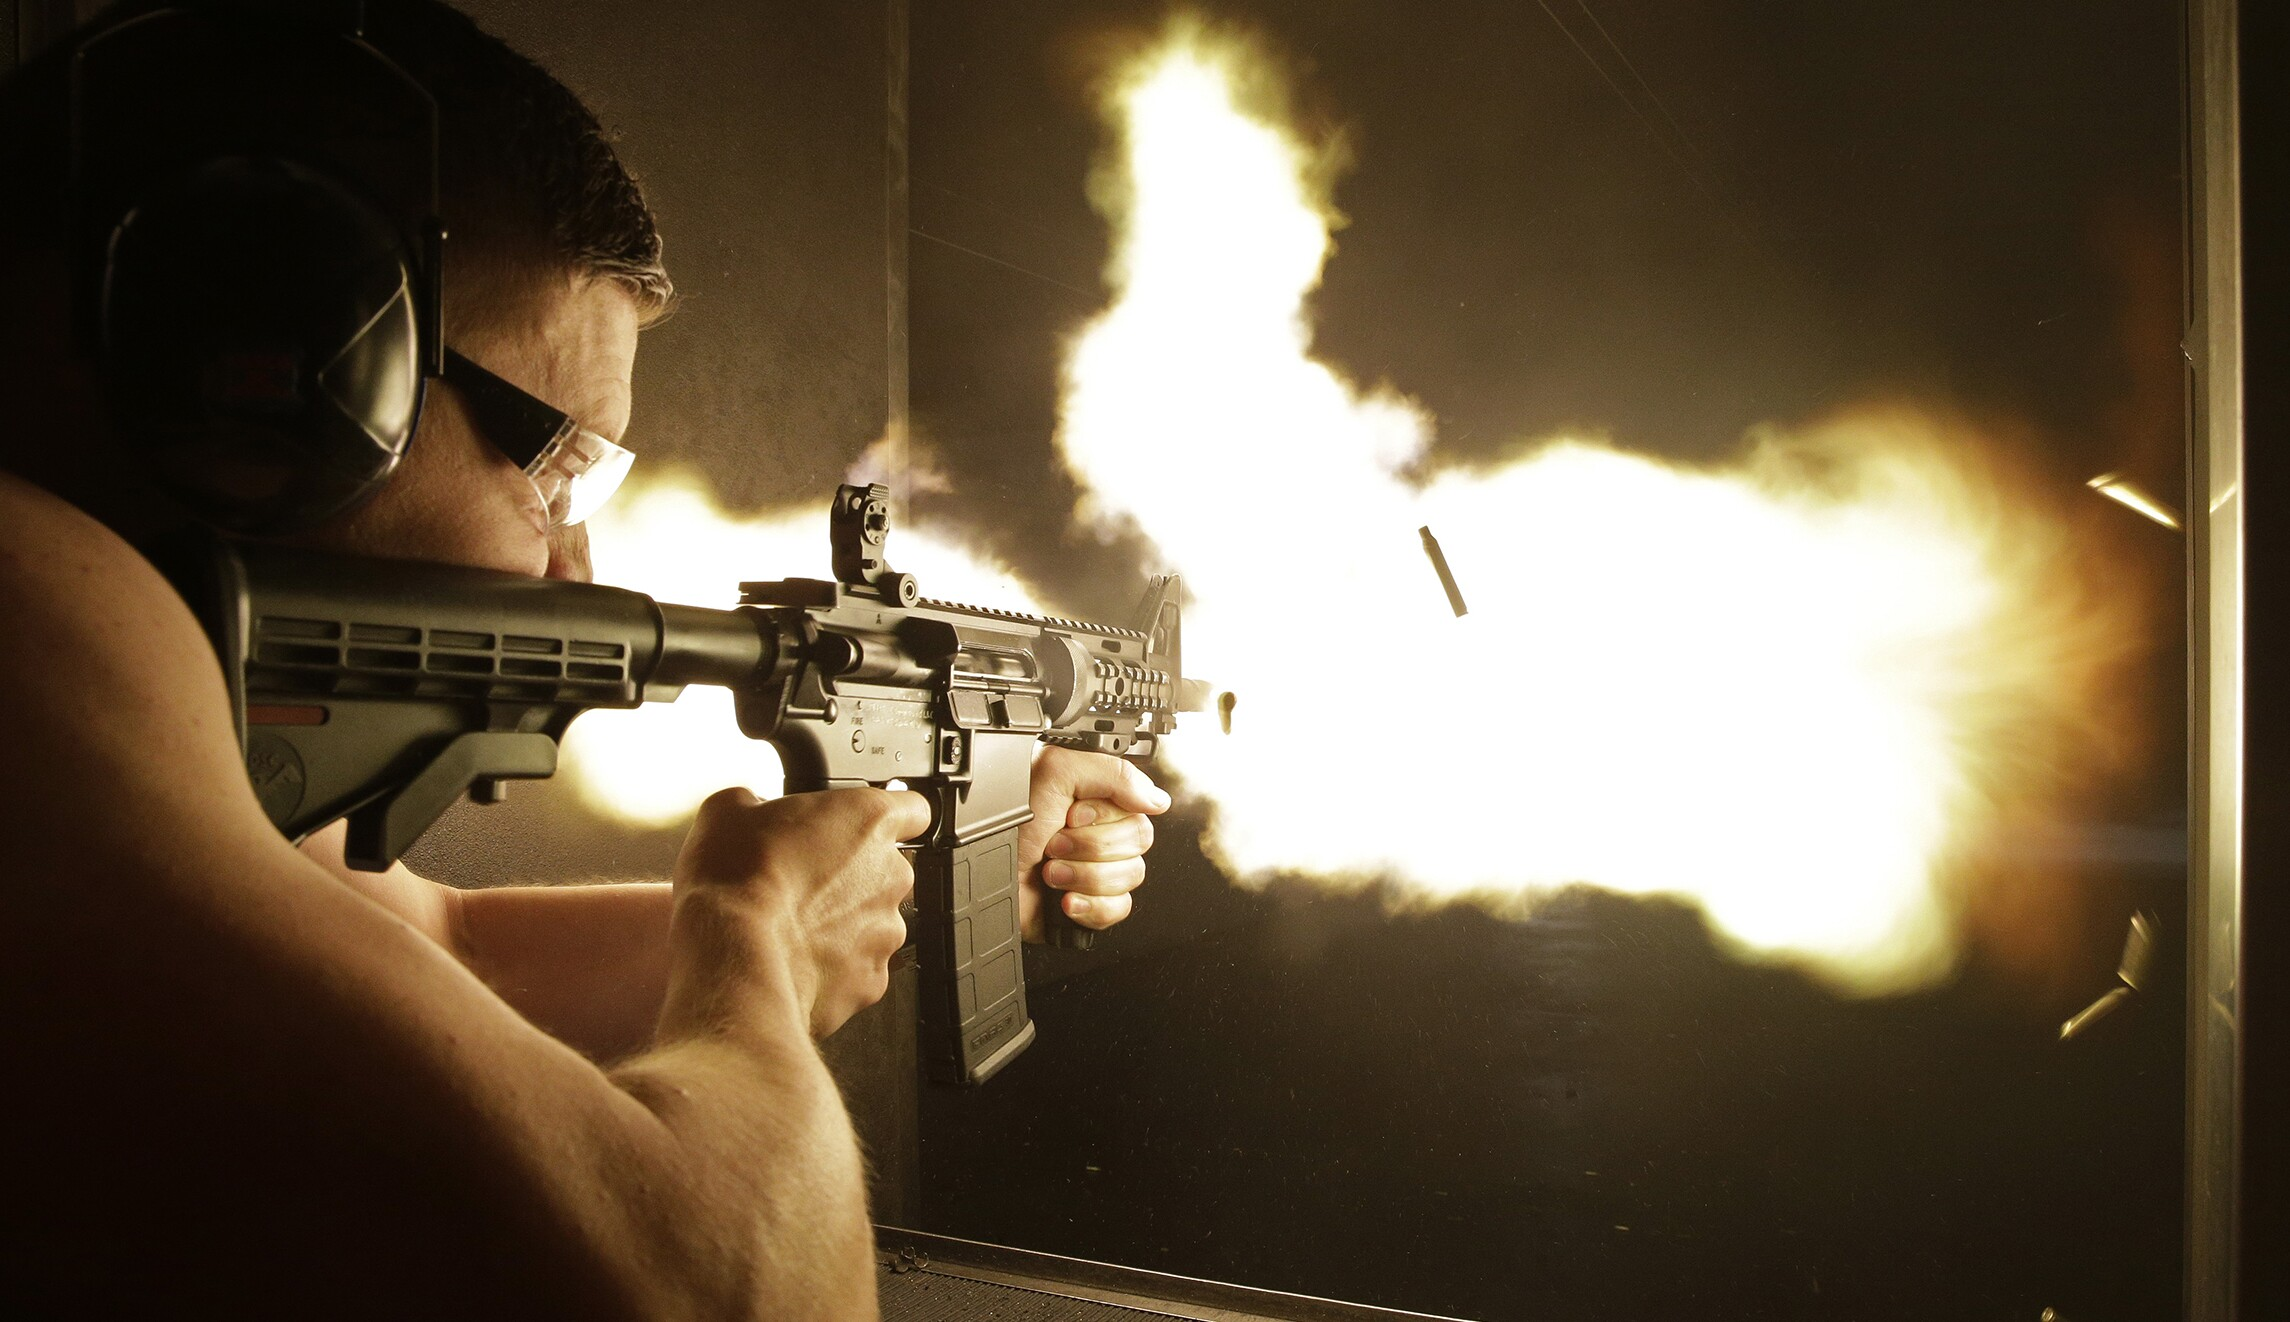 It's still legal to own a machine gun (it's also extremely